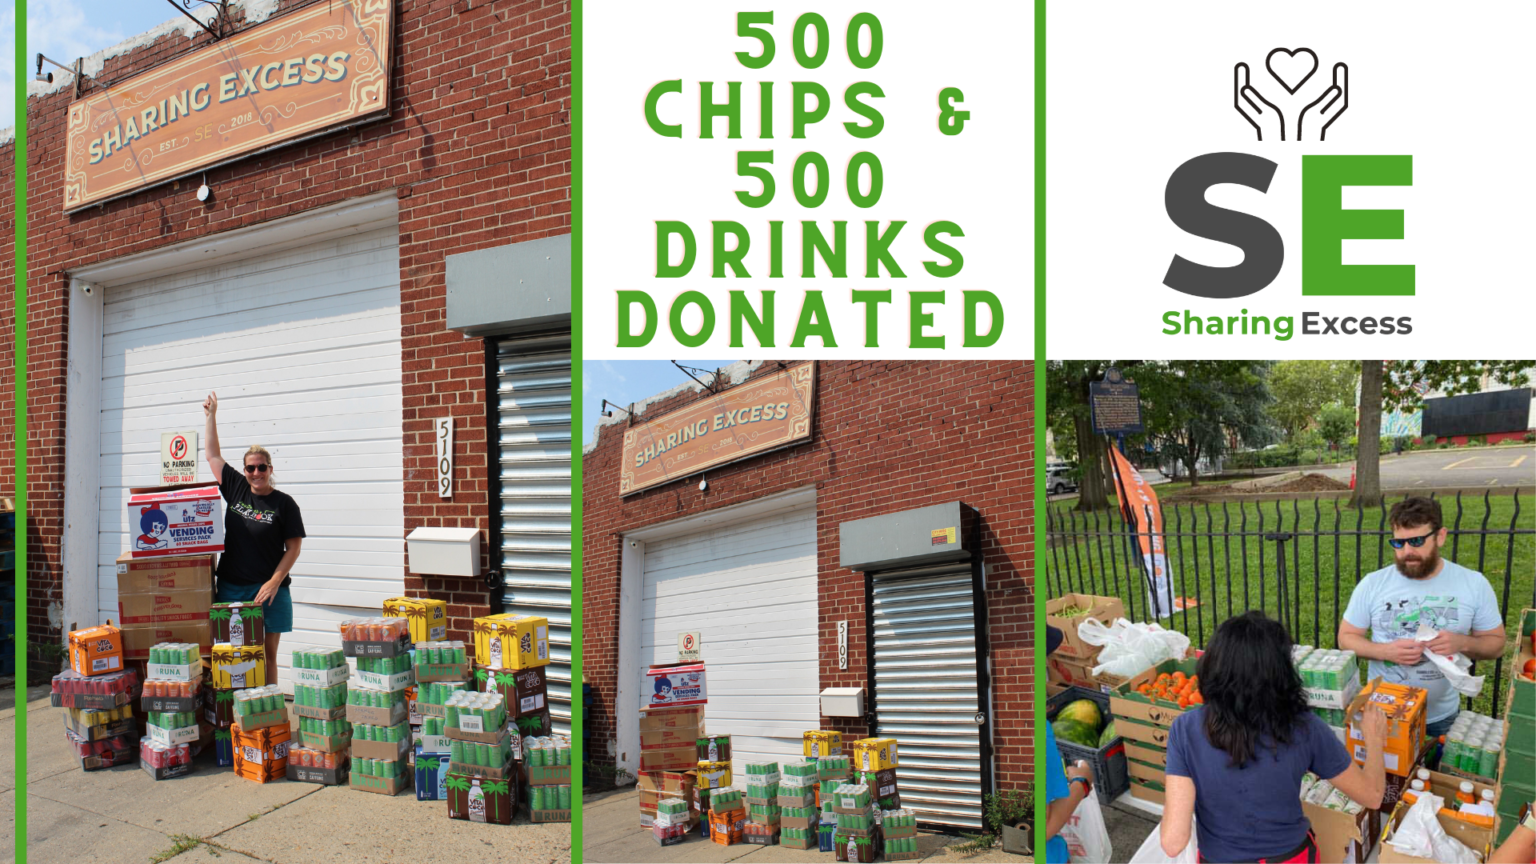 Jaws Youth Playbook Donates 500 Snacks & Drinks to Sharing Excess